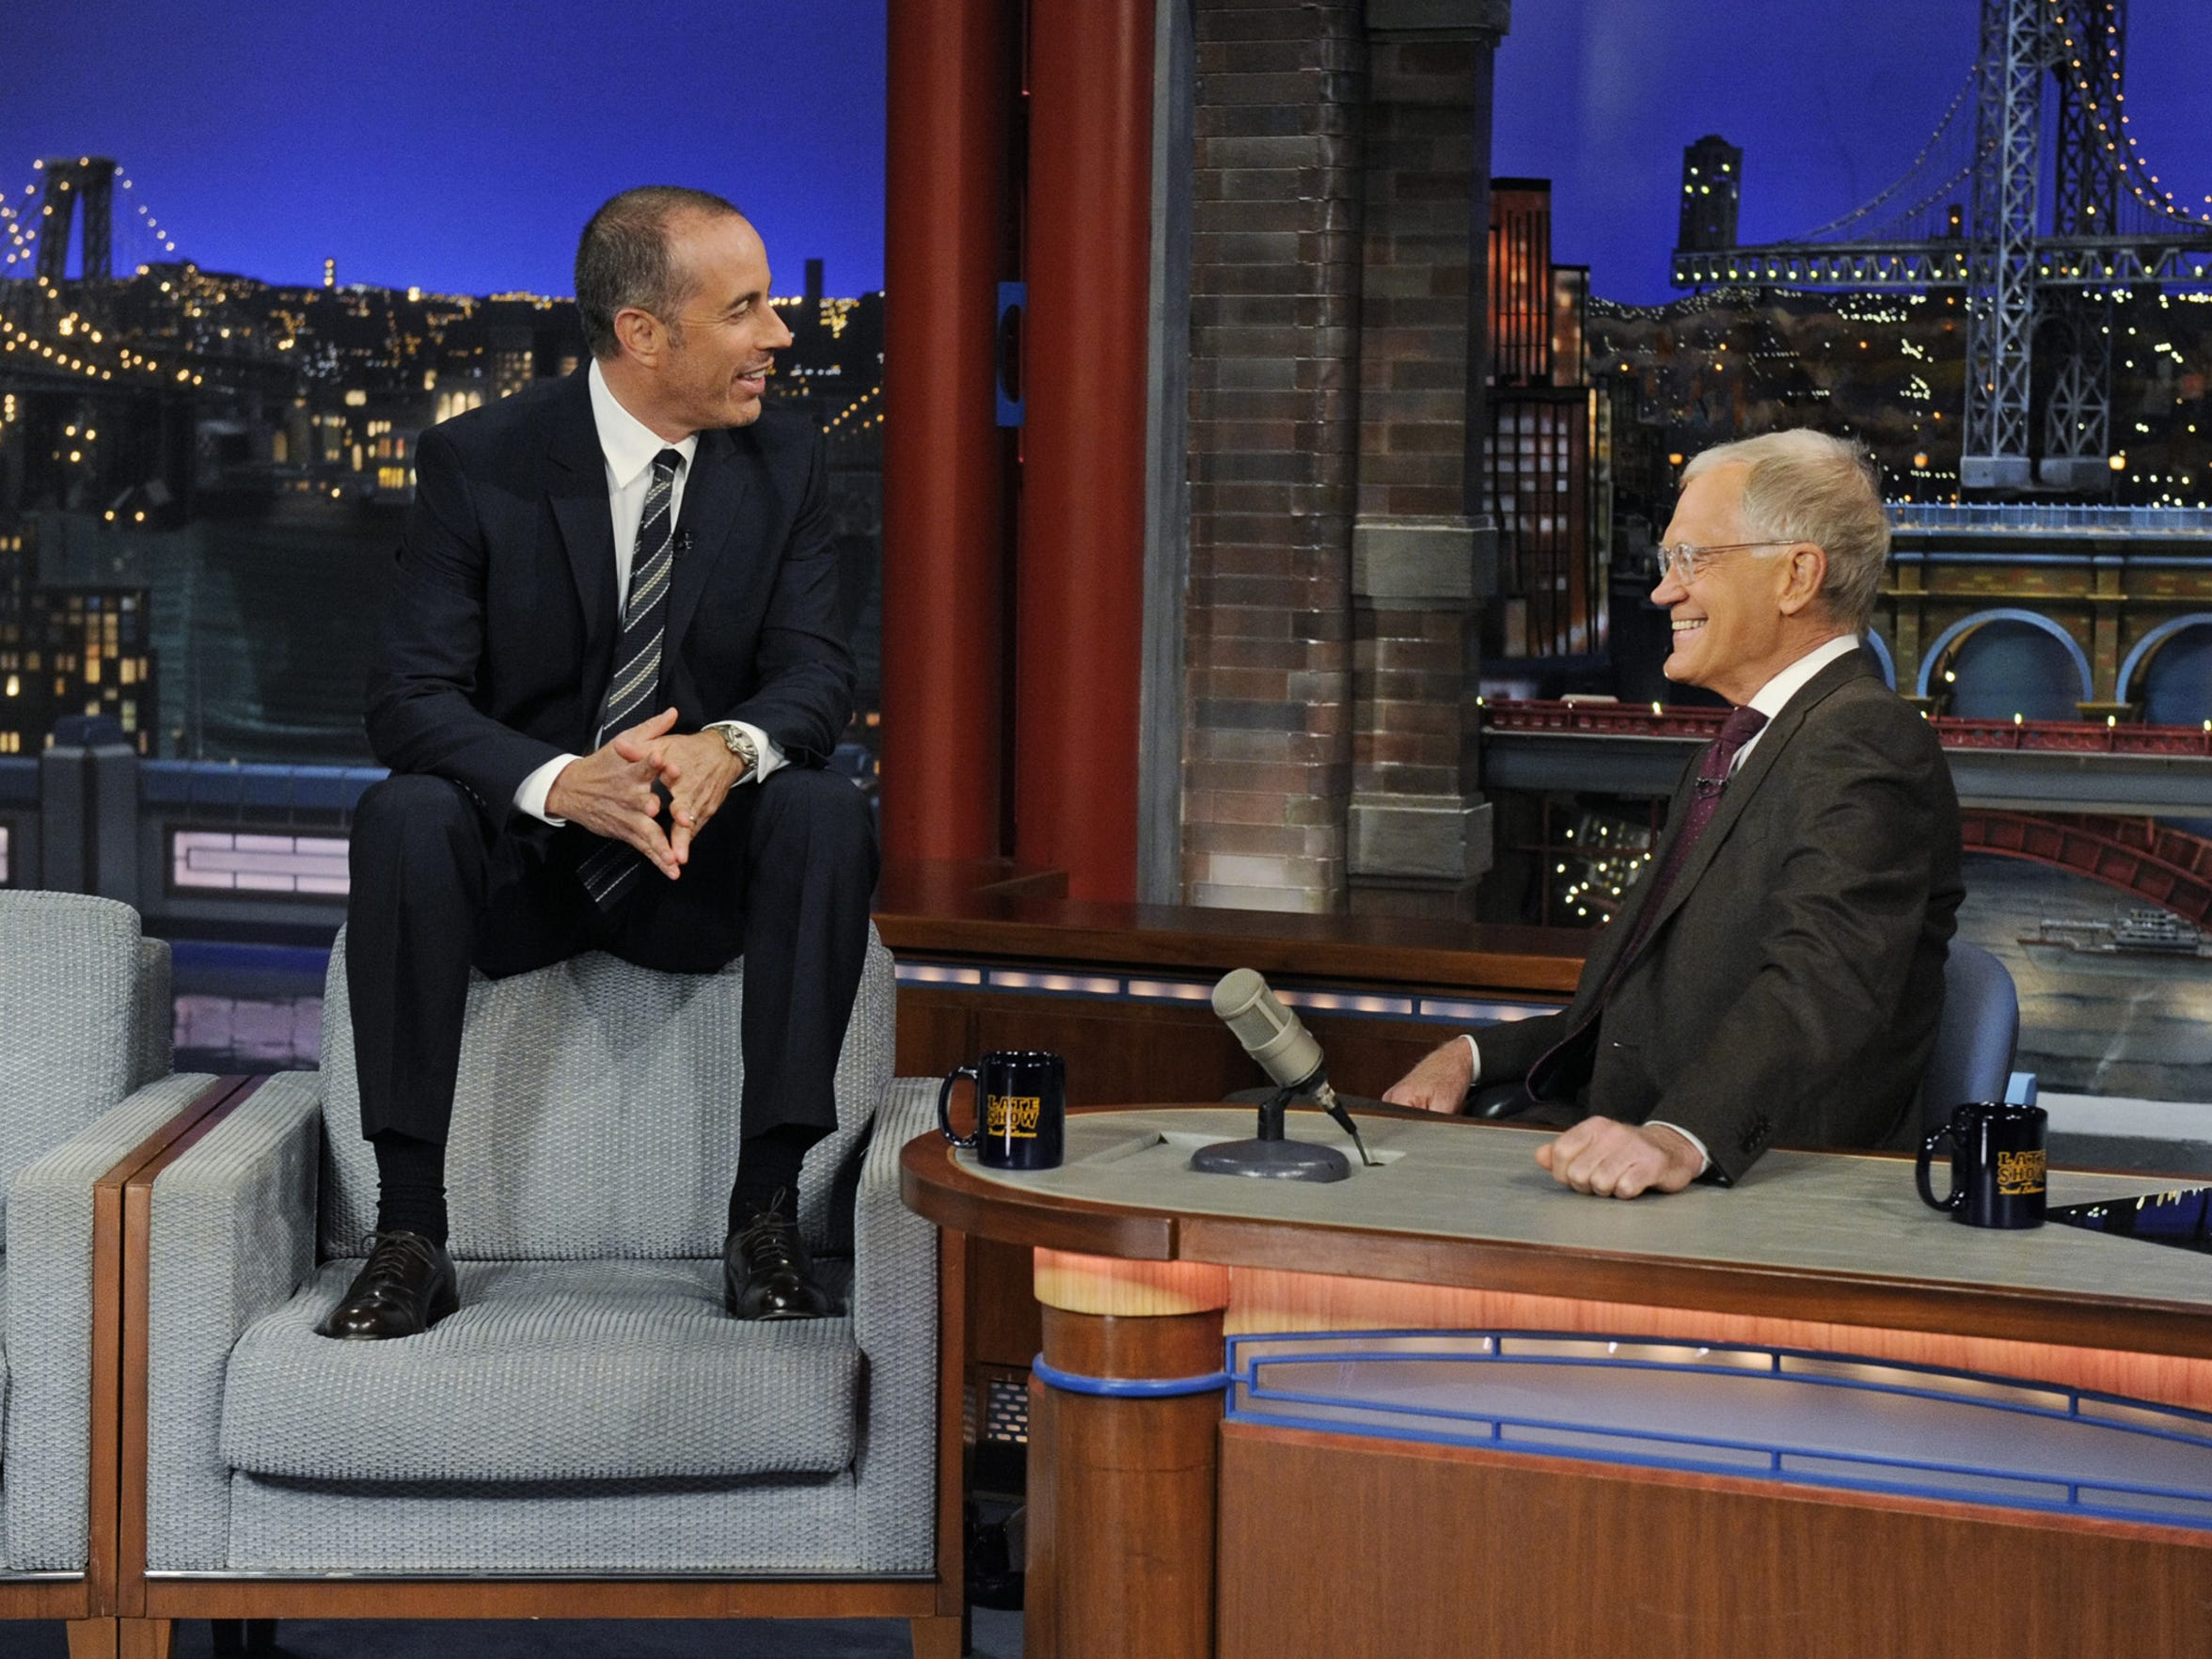 David Letterman interviews comedian Jerry Seinfeld